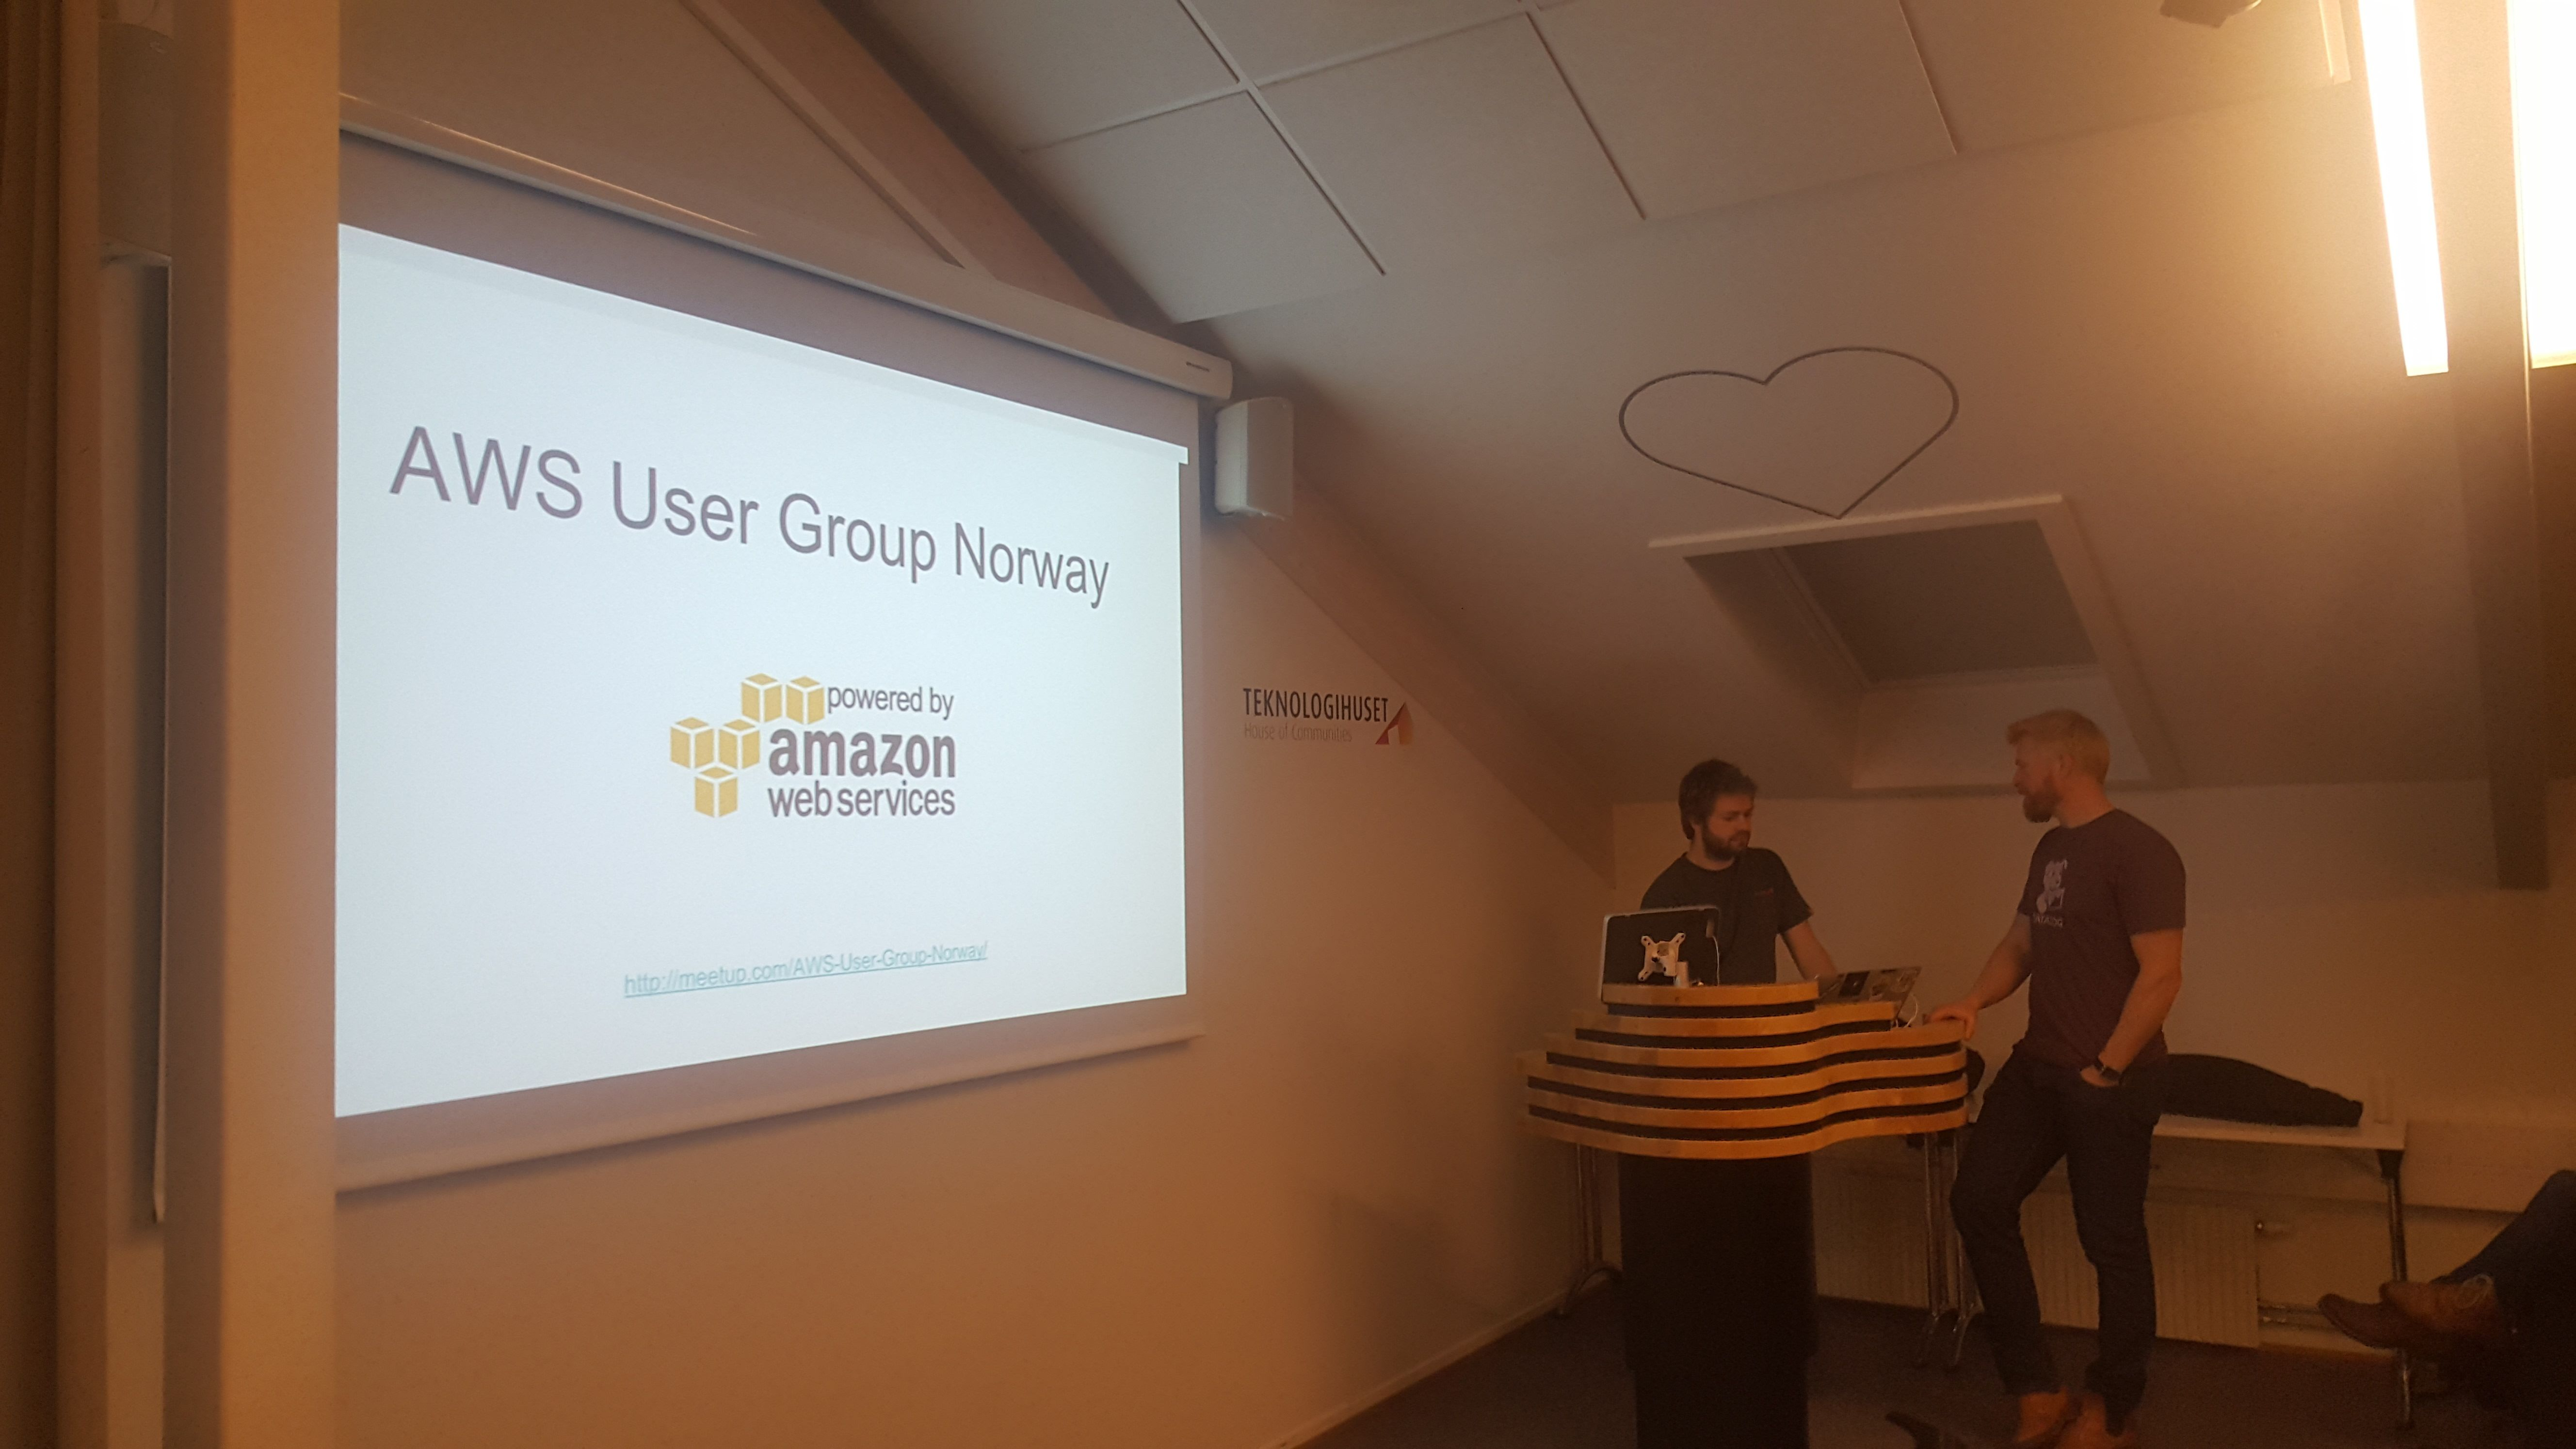 AWS User Group Oslo (Norway)